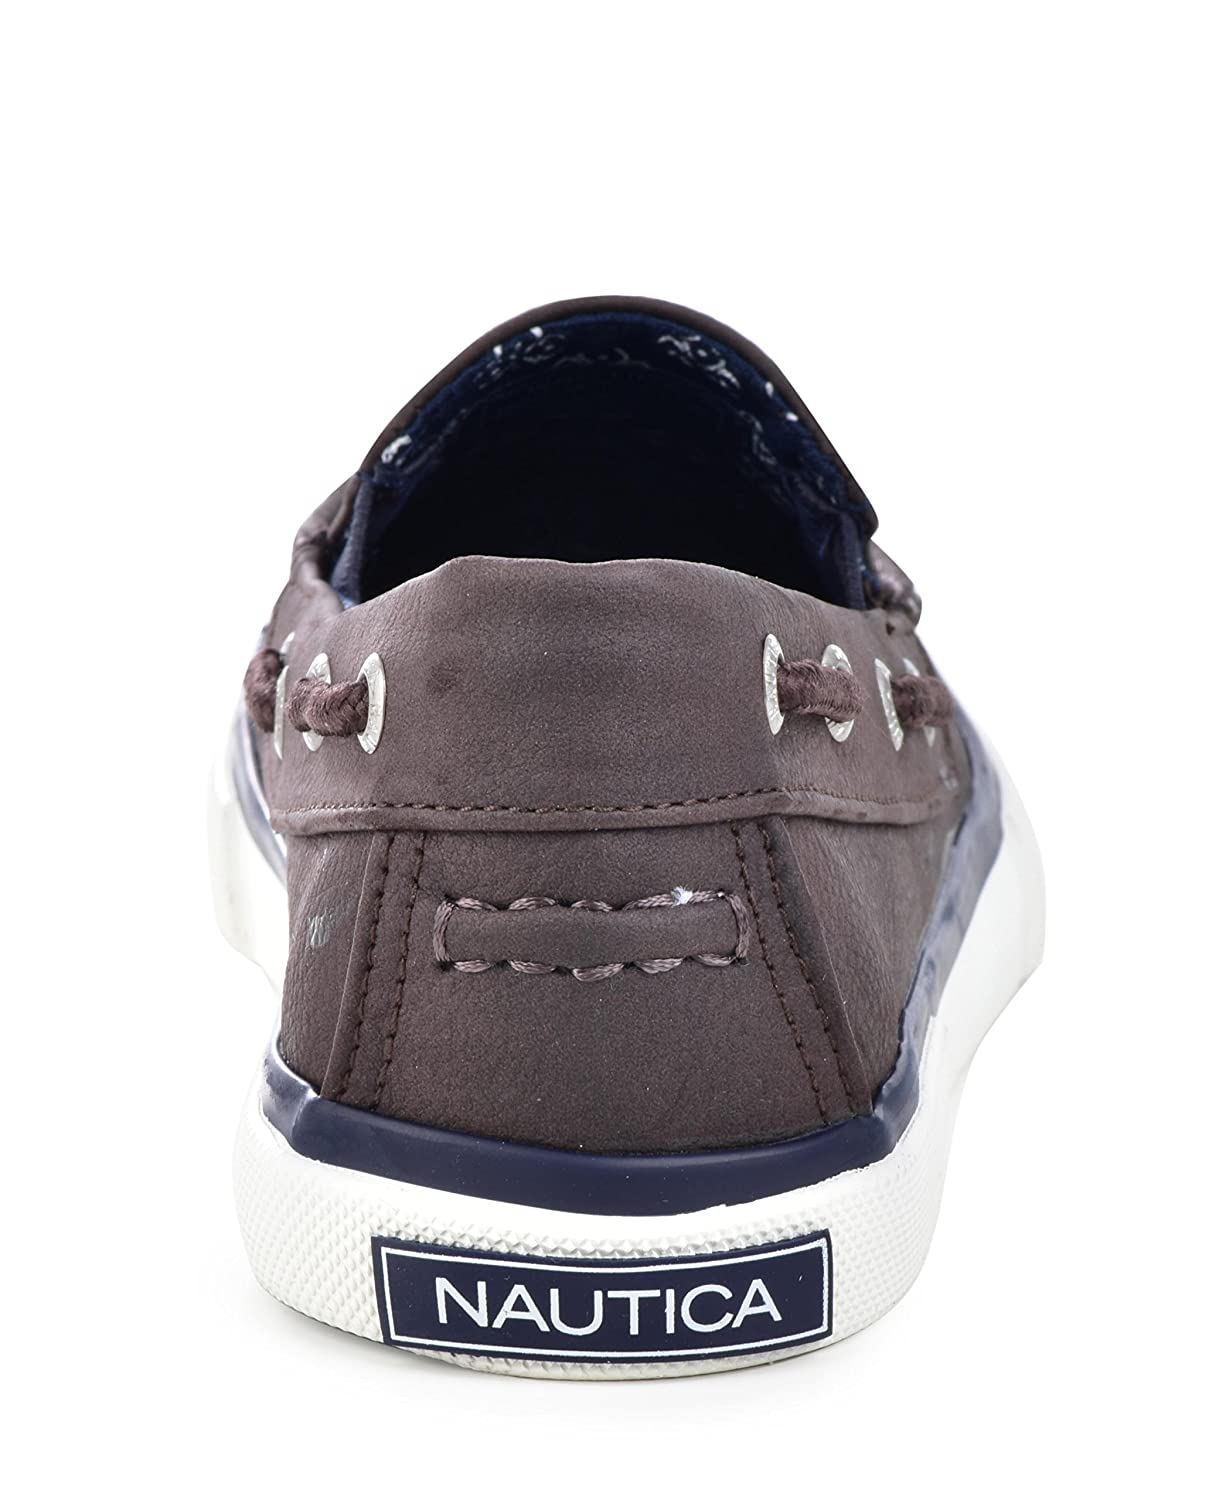 Nautica Doubloon Youth Canvas Twin Gore Slip On Little Kid//Big Kid